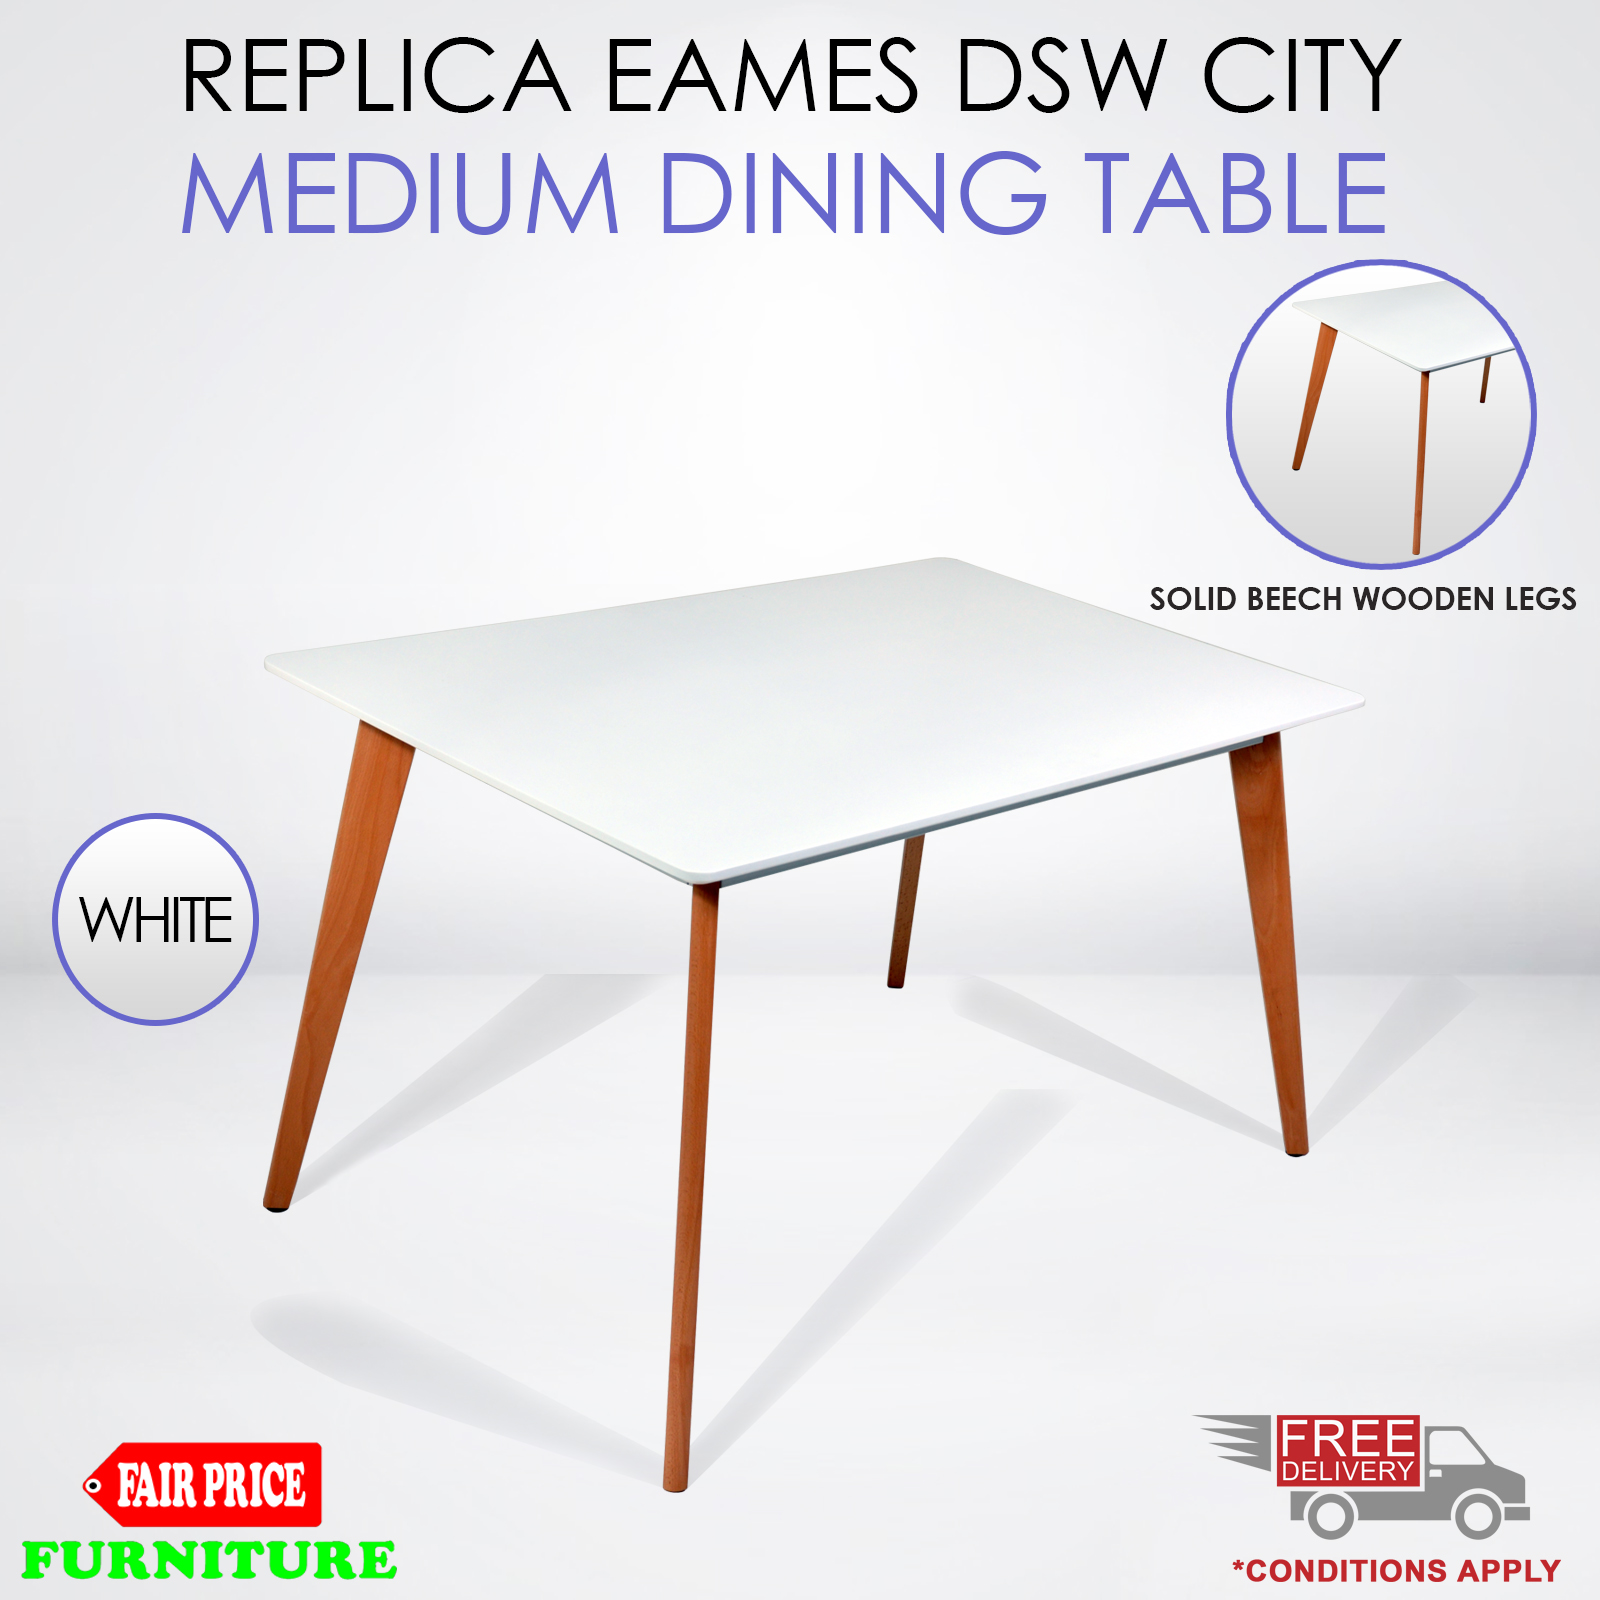 Replica Eames DSW City Dining Table White Designer Kitchen  : City medium Table Main from www.ebay.com.au size 1600 x 1600 jpeg 701kB